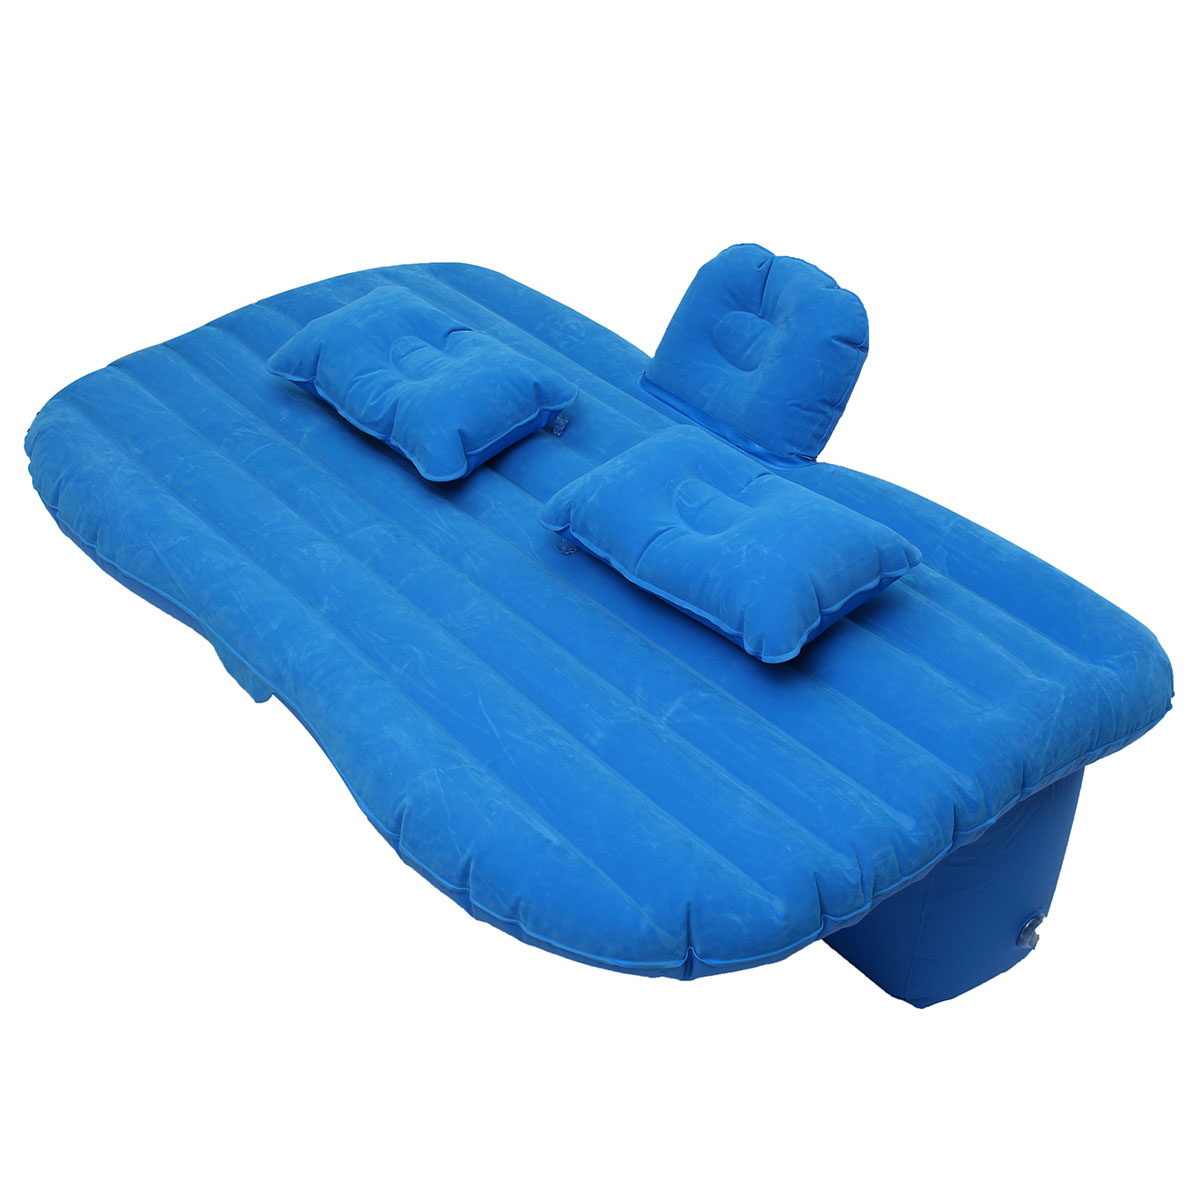 PVC Trunk Car Inflatable Mattress Outdoor Travel Sleeping Bed Lazy Sofa Air Bed for SUV